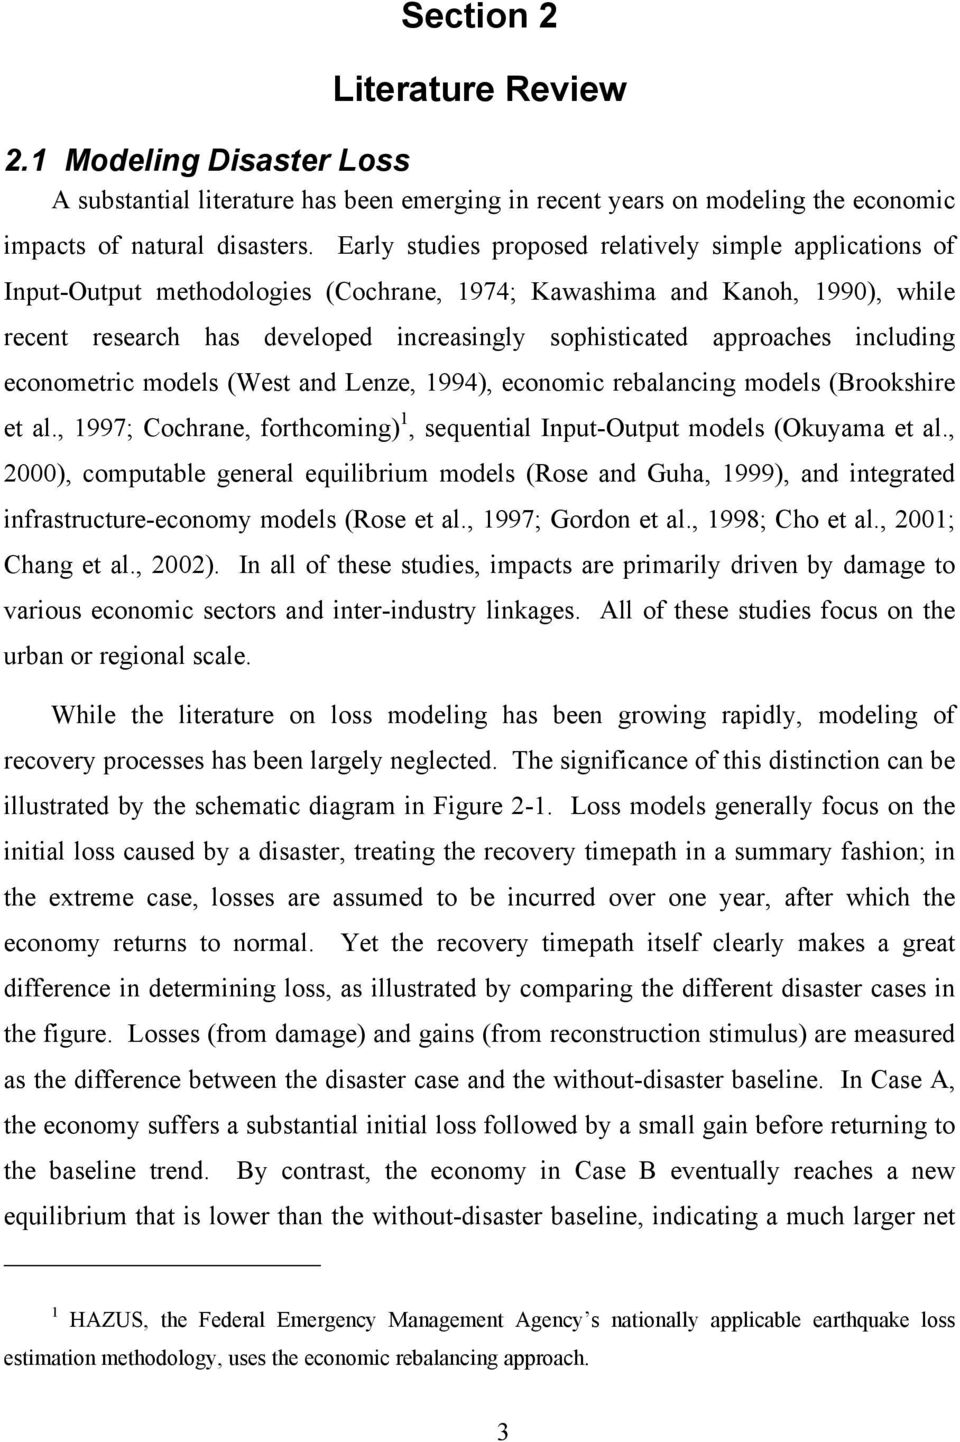 approaches including econometric models (West and Lenze, 1994), economic rebalancing models (Brookshire et al., 1997; Cochrane, forthcoming) 1, sequential Input-Output models (Okuyama et al.